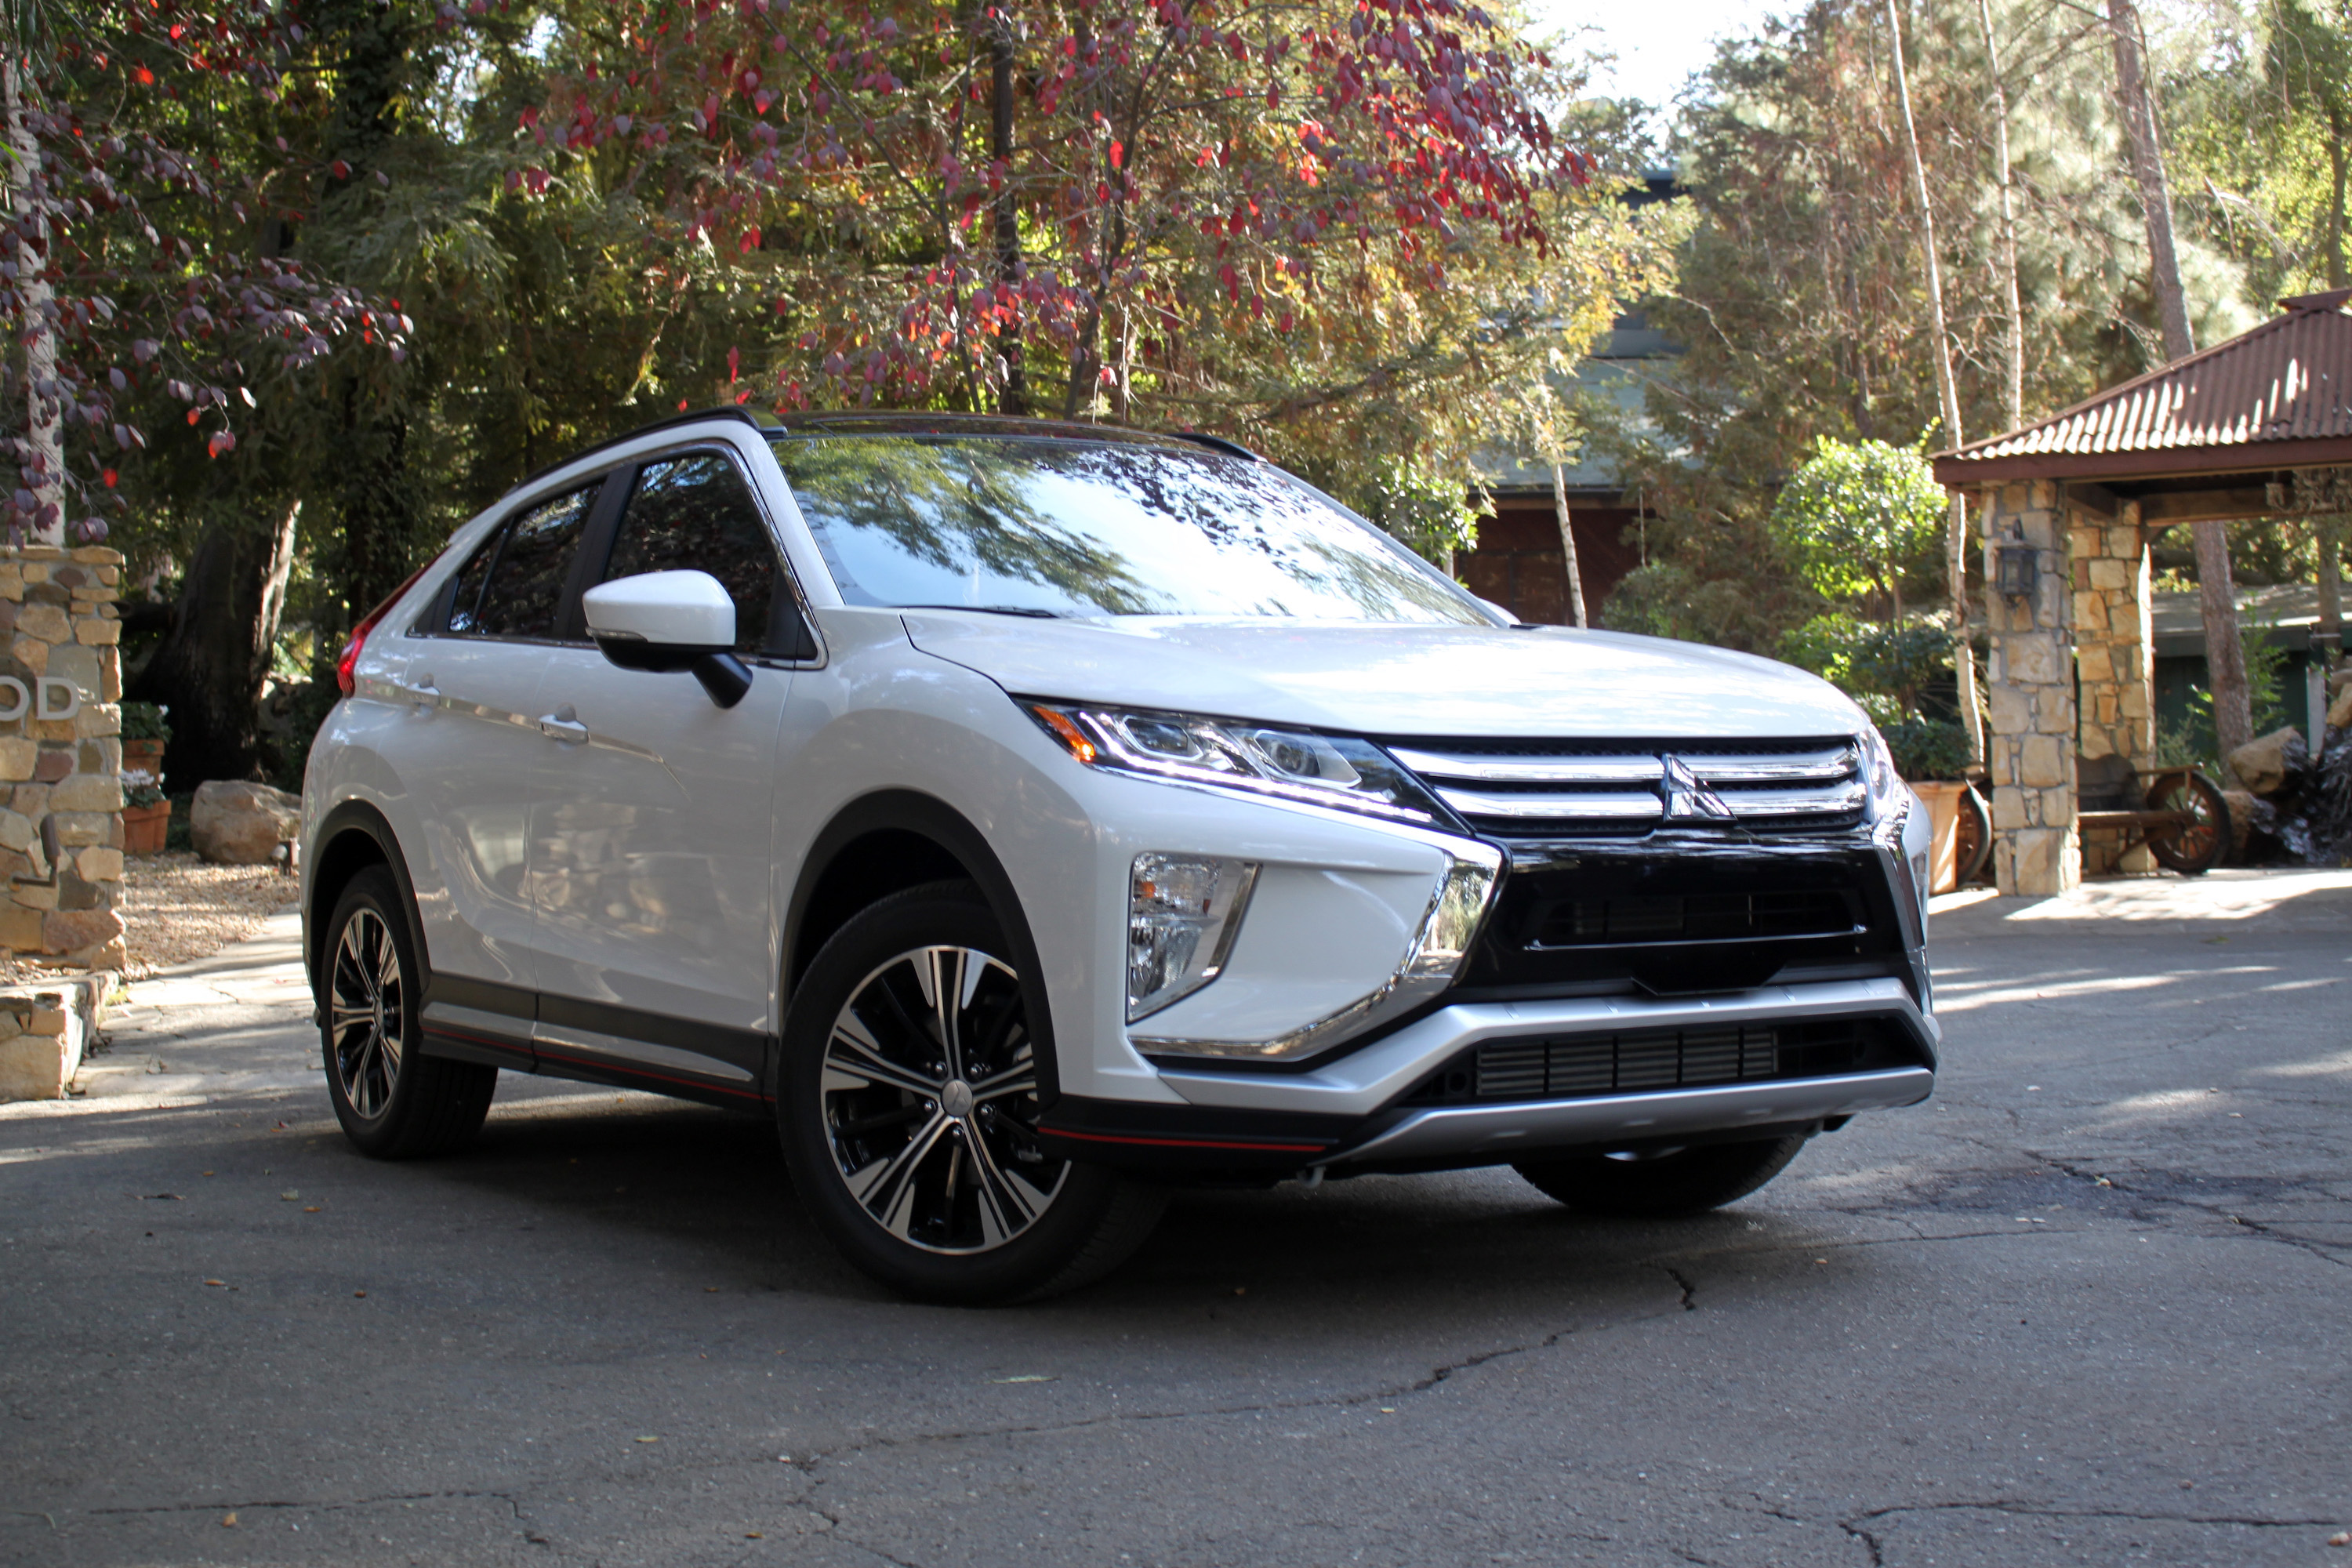 2018 Mitsubishi Eclipse Cross Review 15